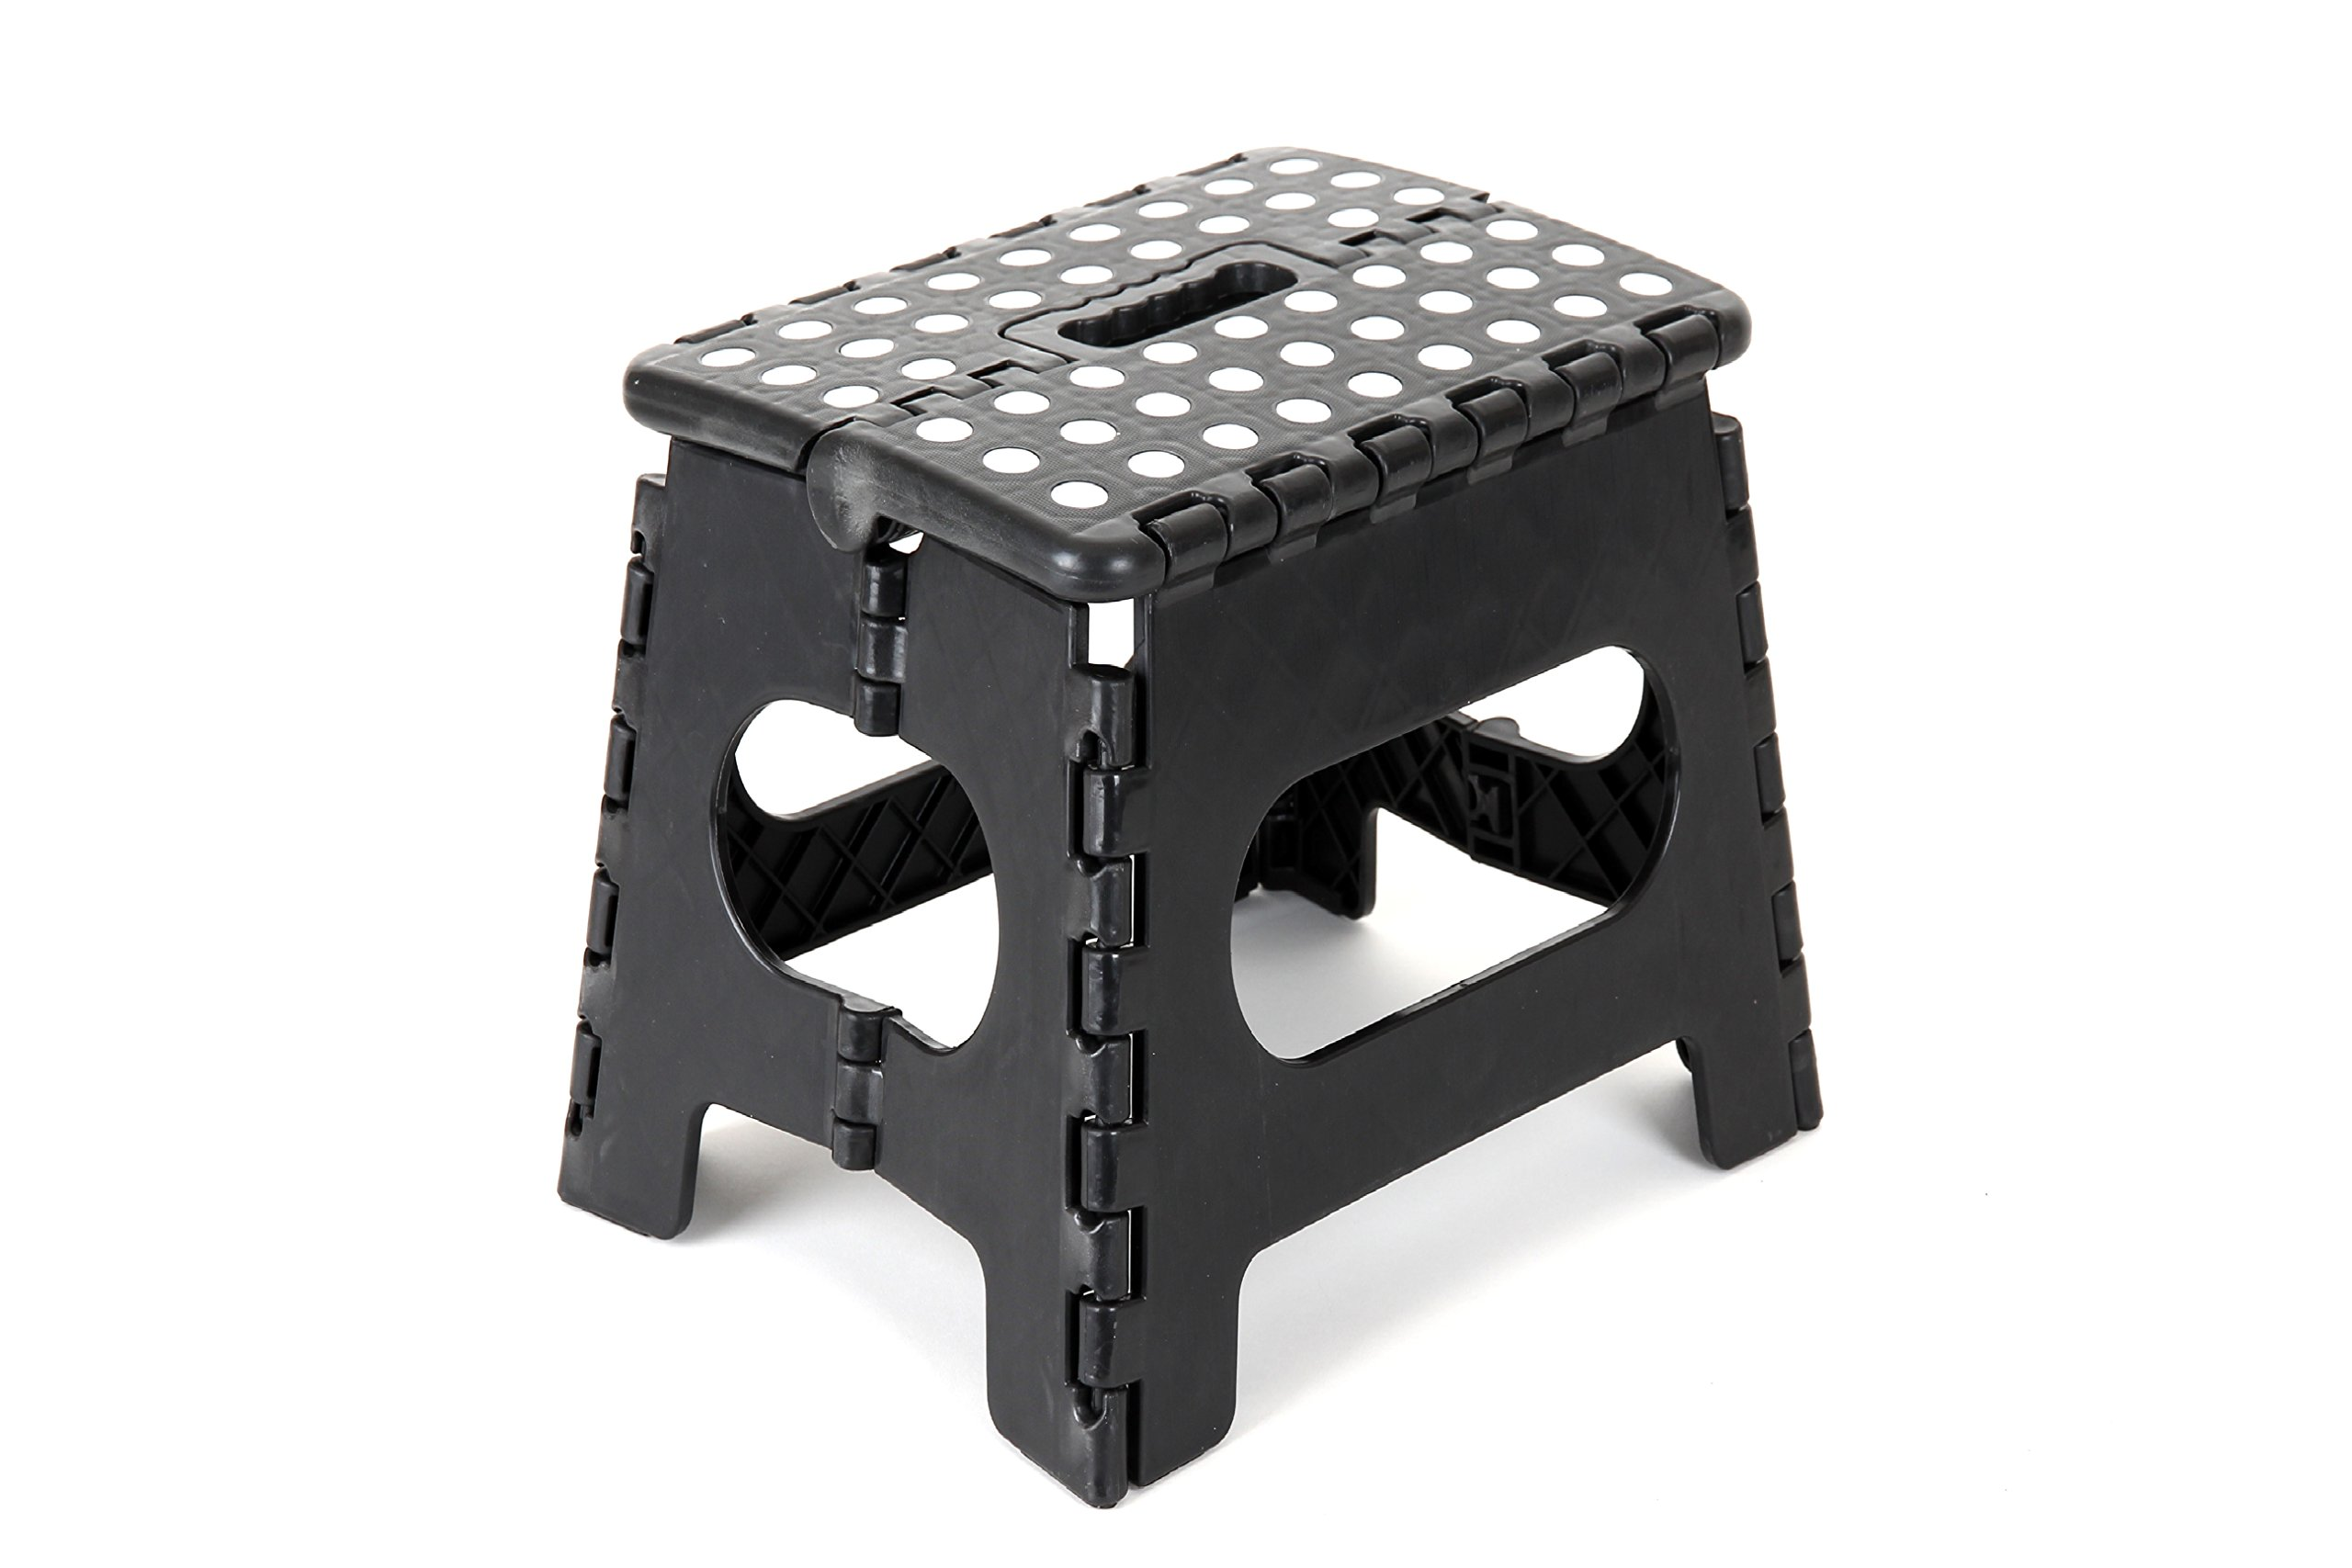 "Epica Folding Step Stool – Ideal Kids Adults-Non-Slip 9"" x 11"" Platform - Adds 9 Inches Height - Holds Up to 350 lbs. - Black by Epica"